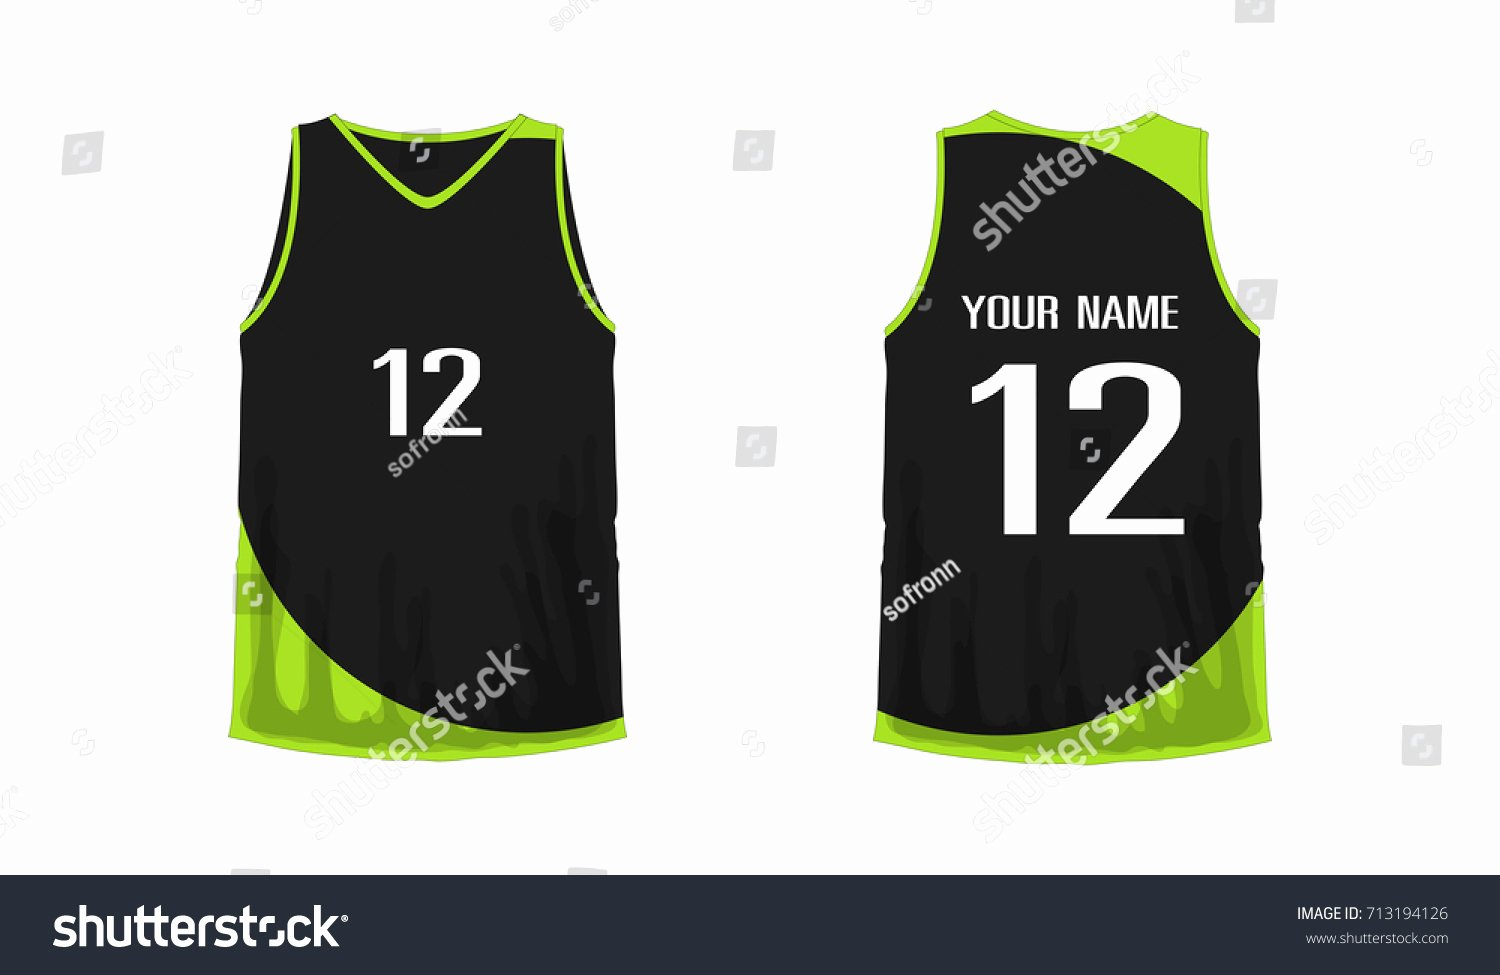 Green T Shirt Template Fresh Tshirt Green Black Basketball Football Template Stock